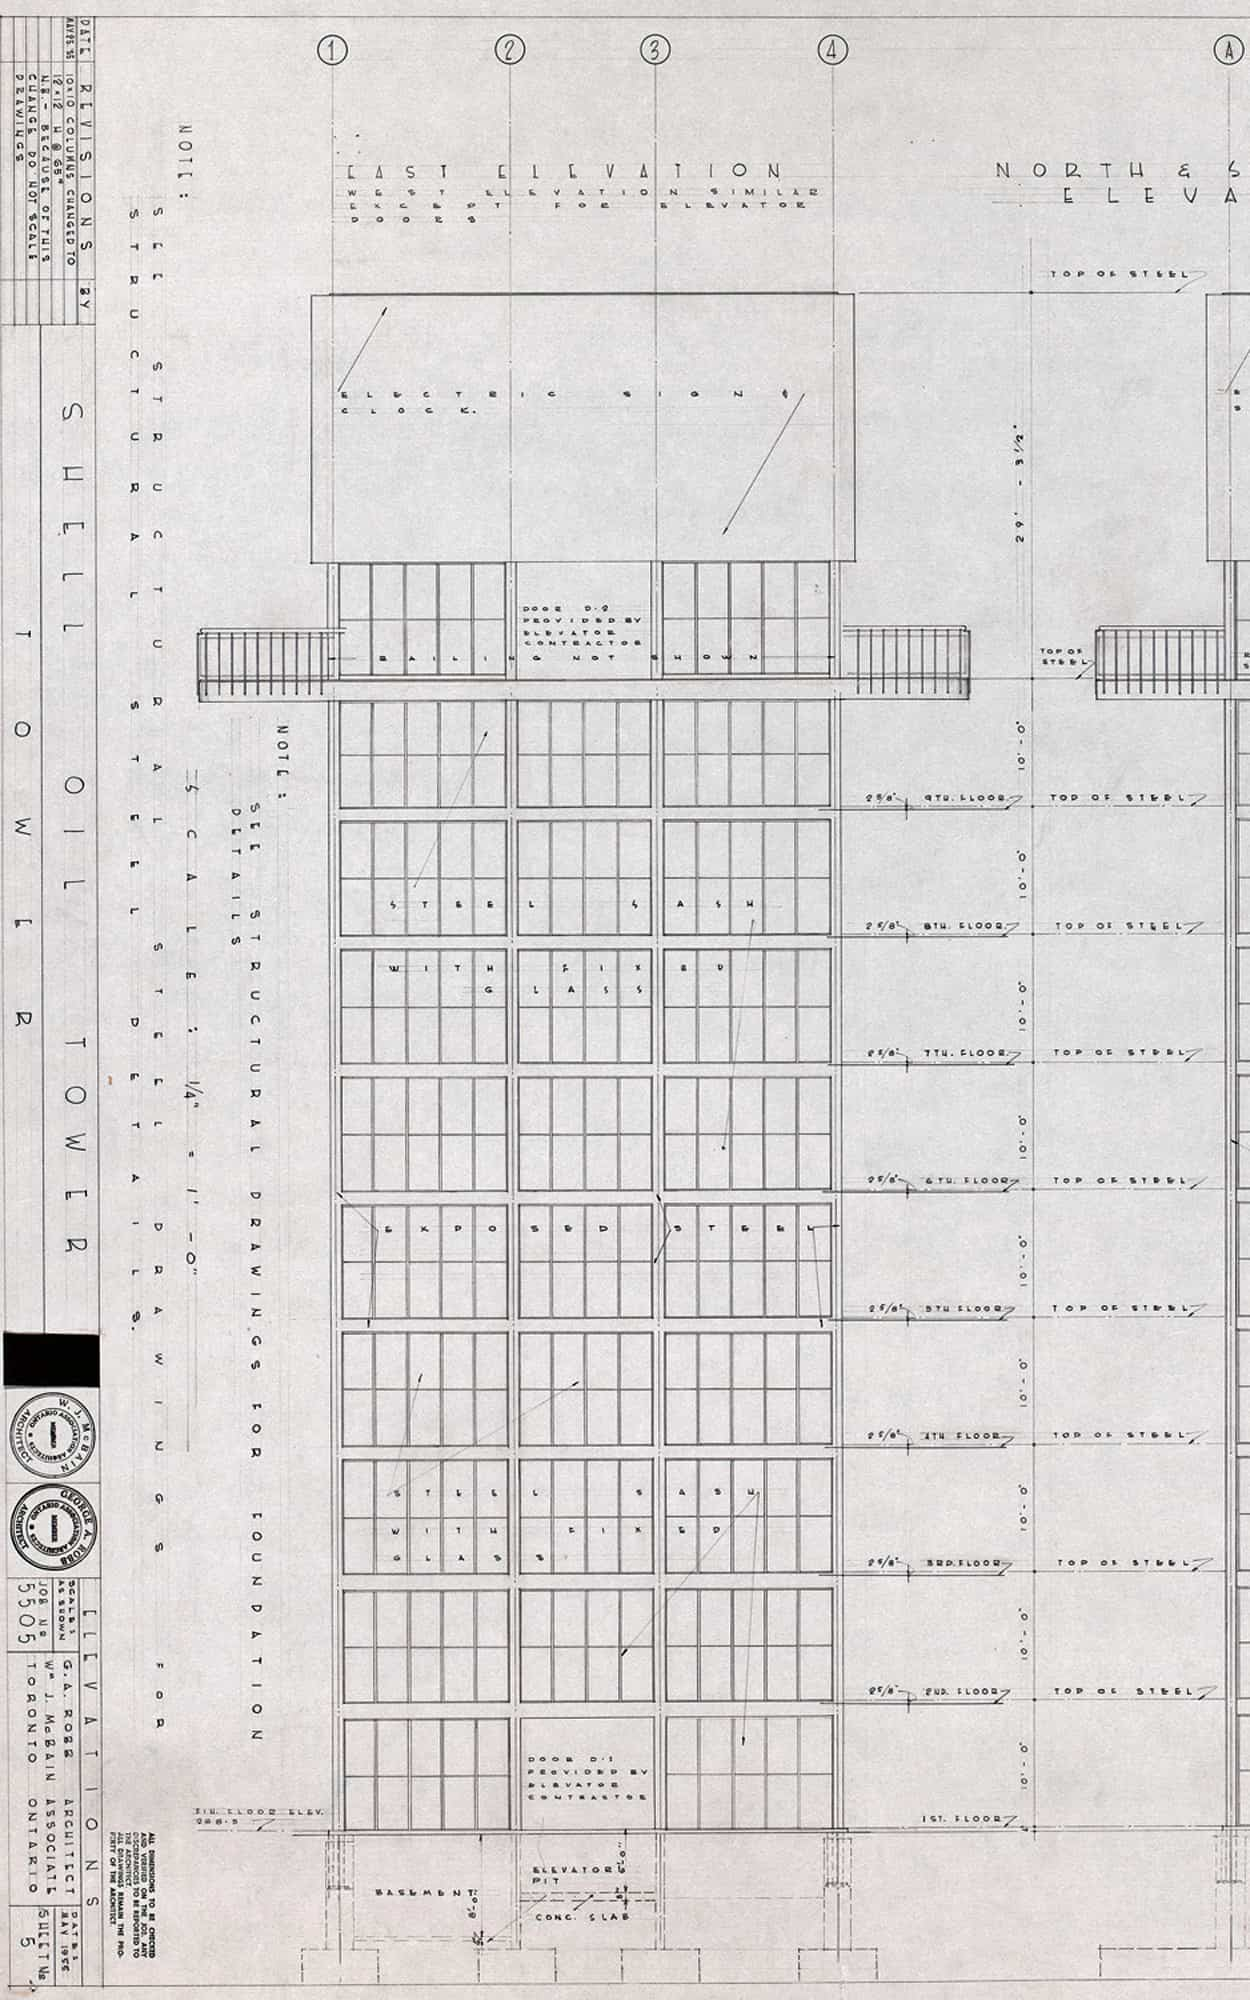 Construction drawing illustrating the minimal, engineered quality of the design, 1955 (City of Toronto Archives, Fonds 261, Series 1147, File 39, Item 1)